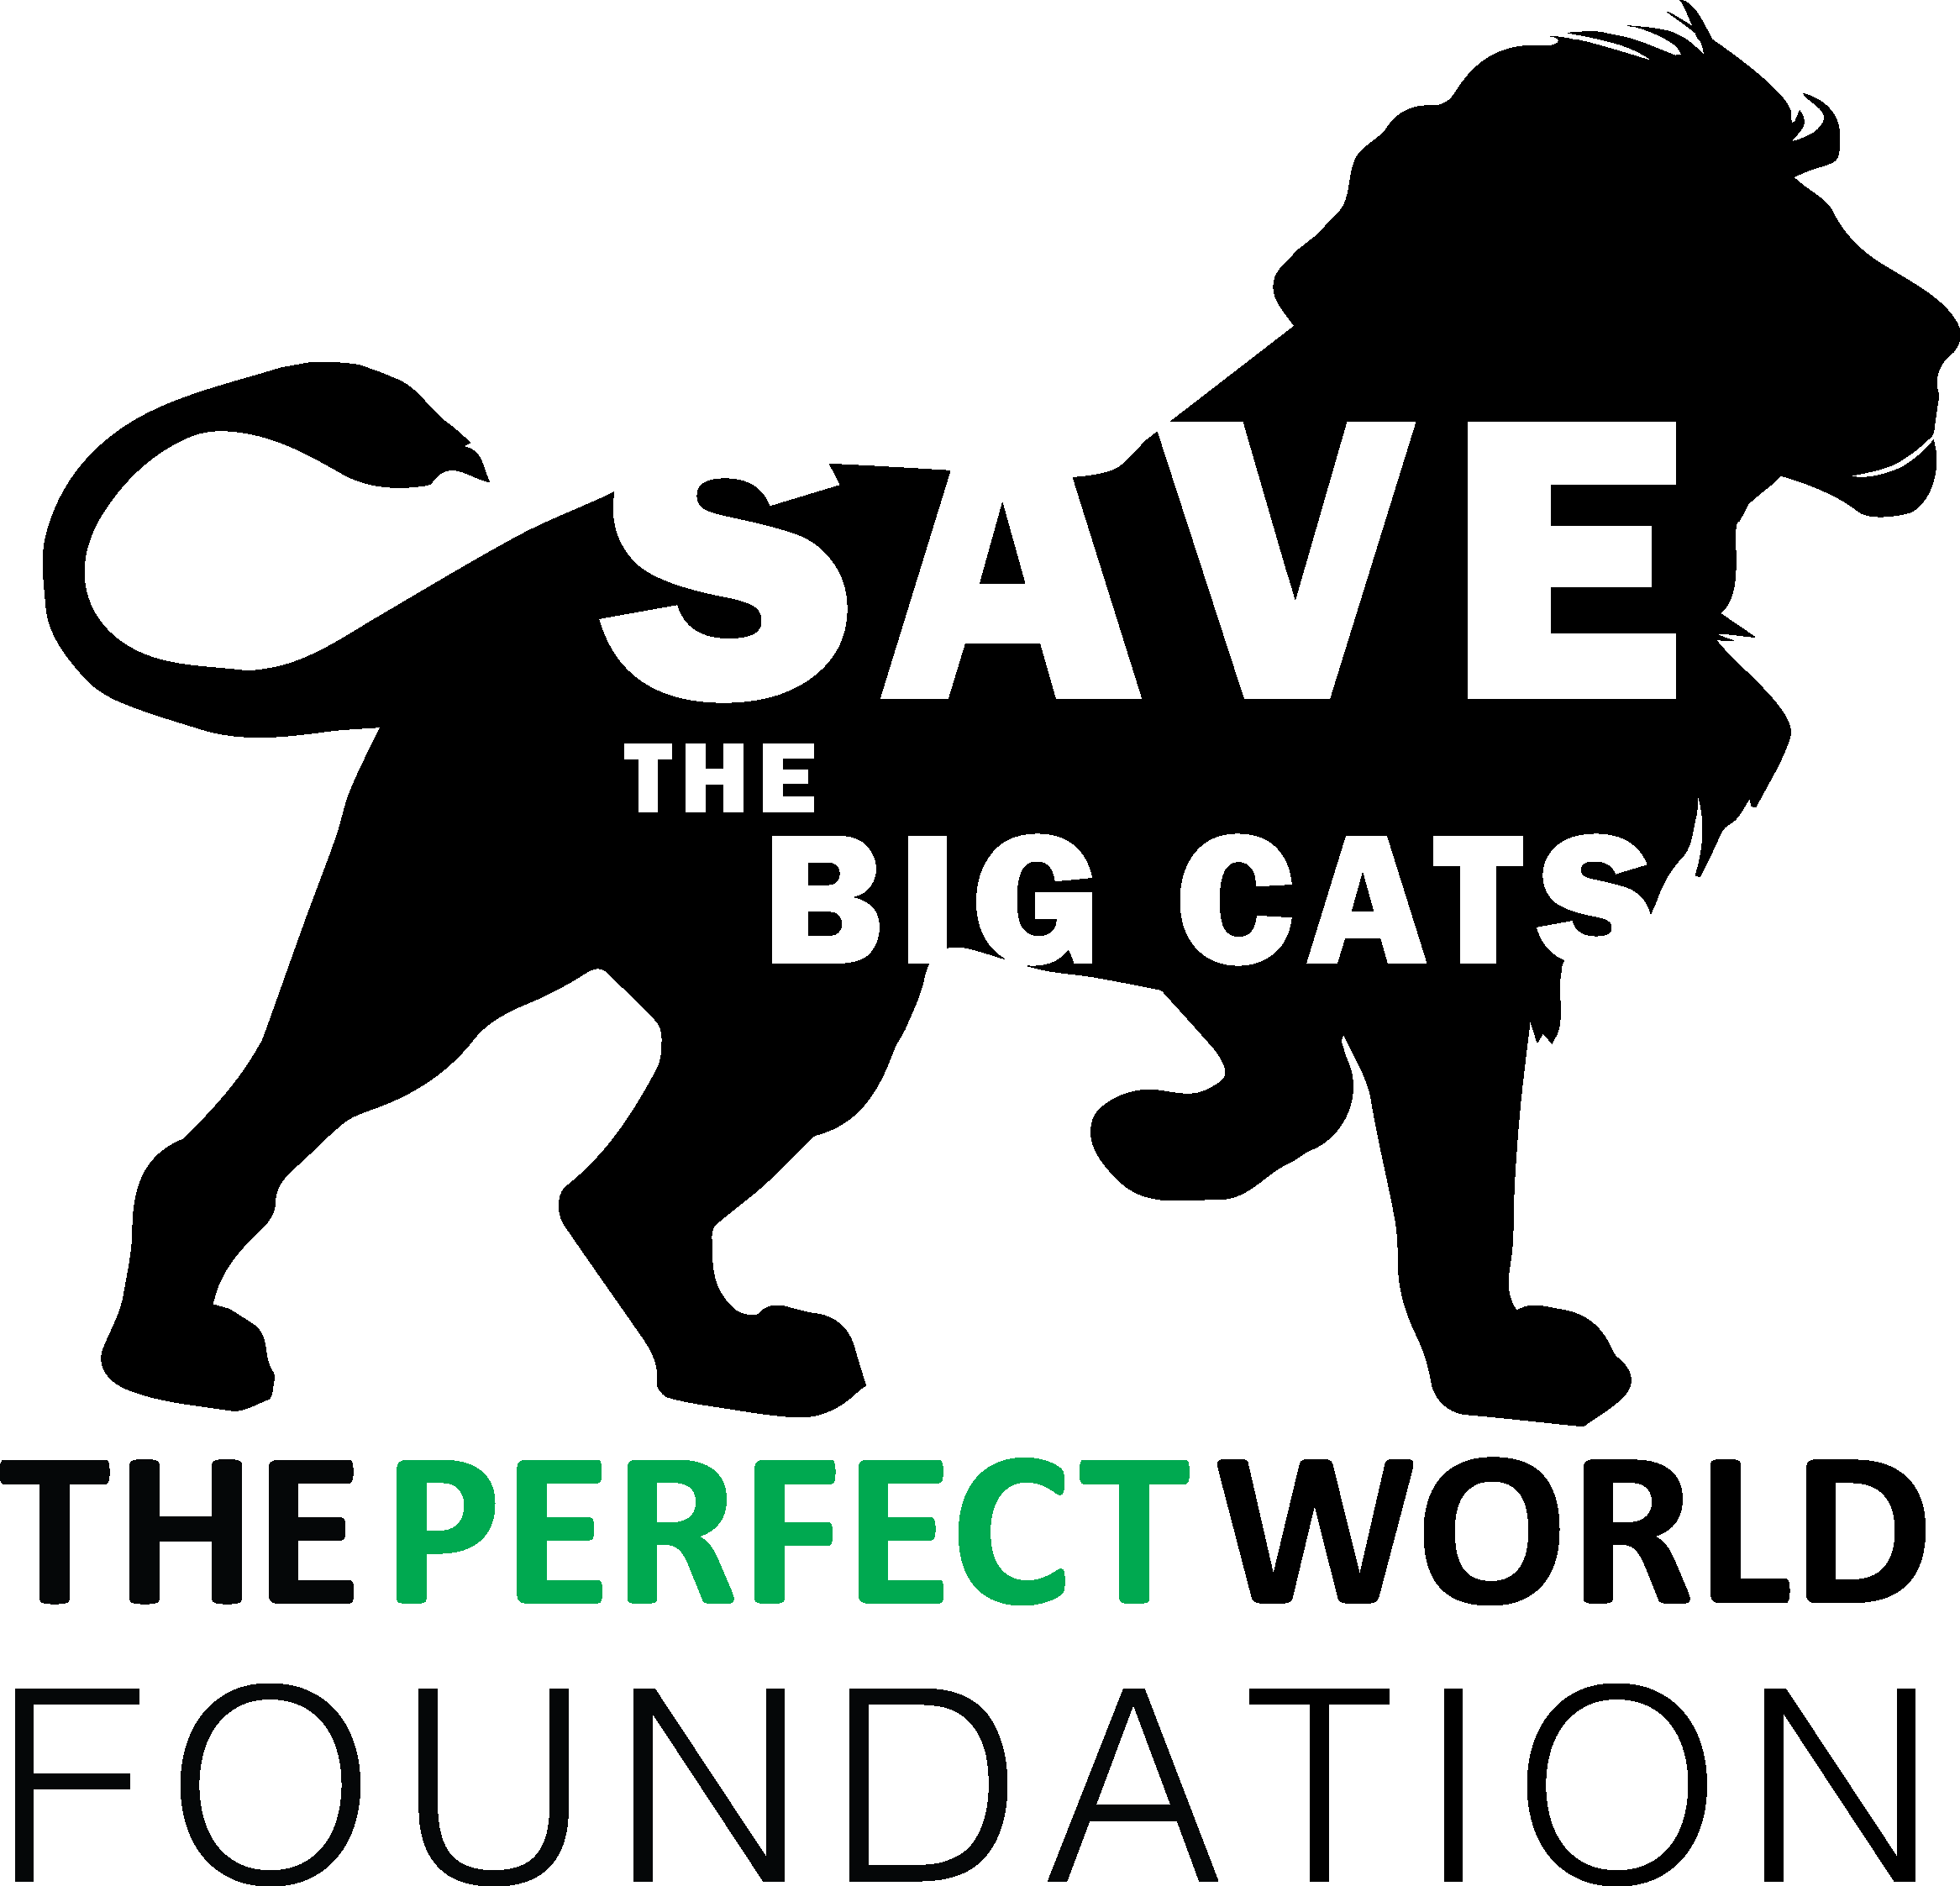 save_the_big_cats_black